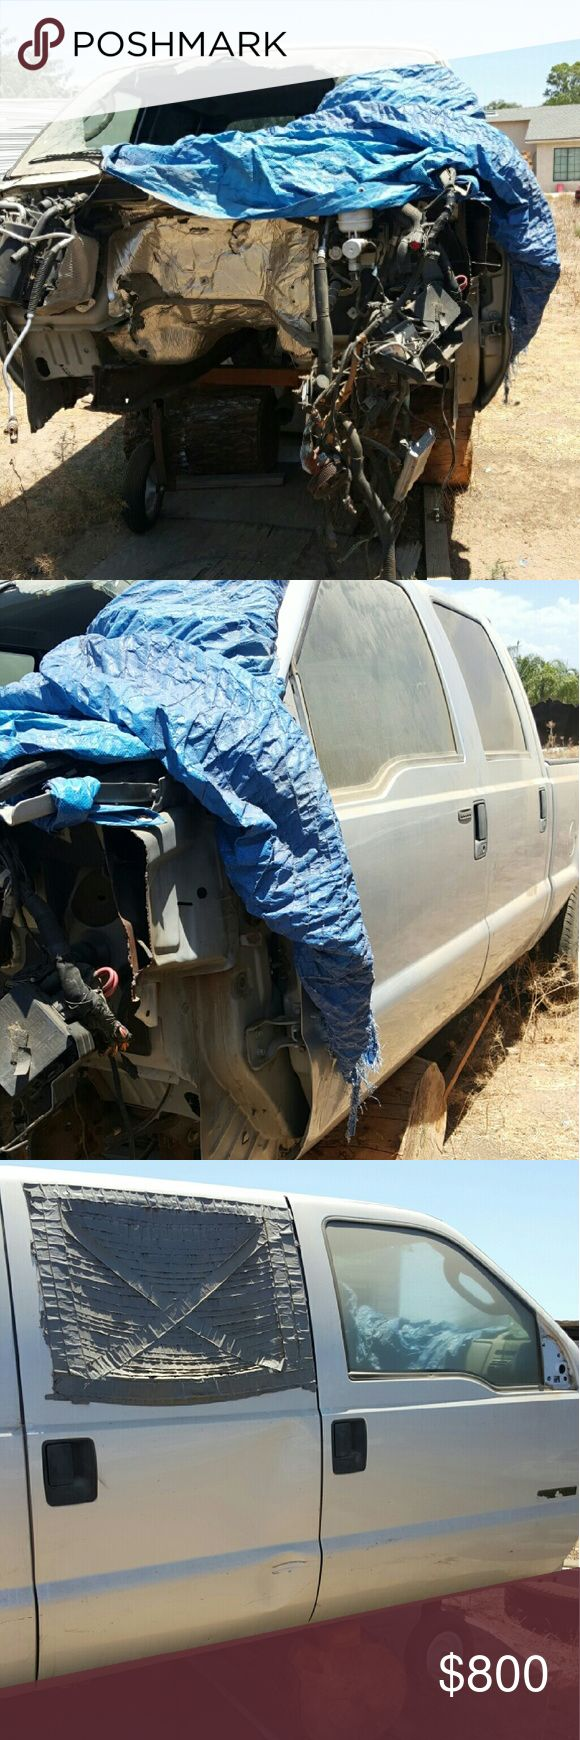 Ford f350 2007 ford parts or all for sale ford other